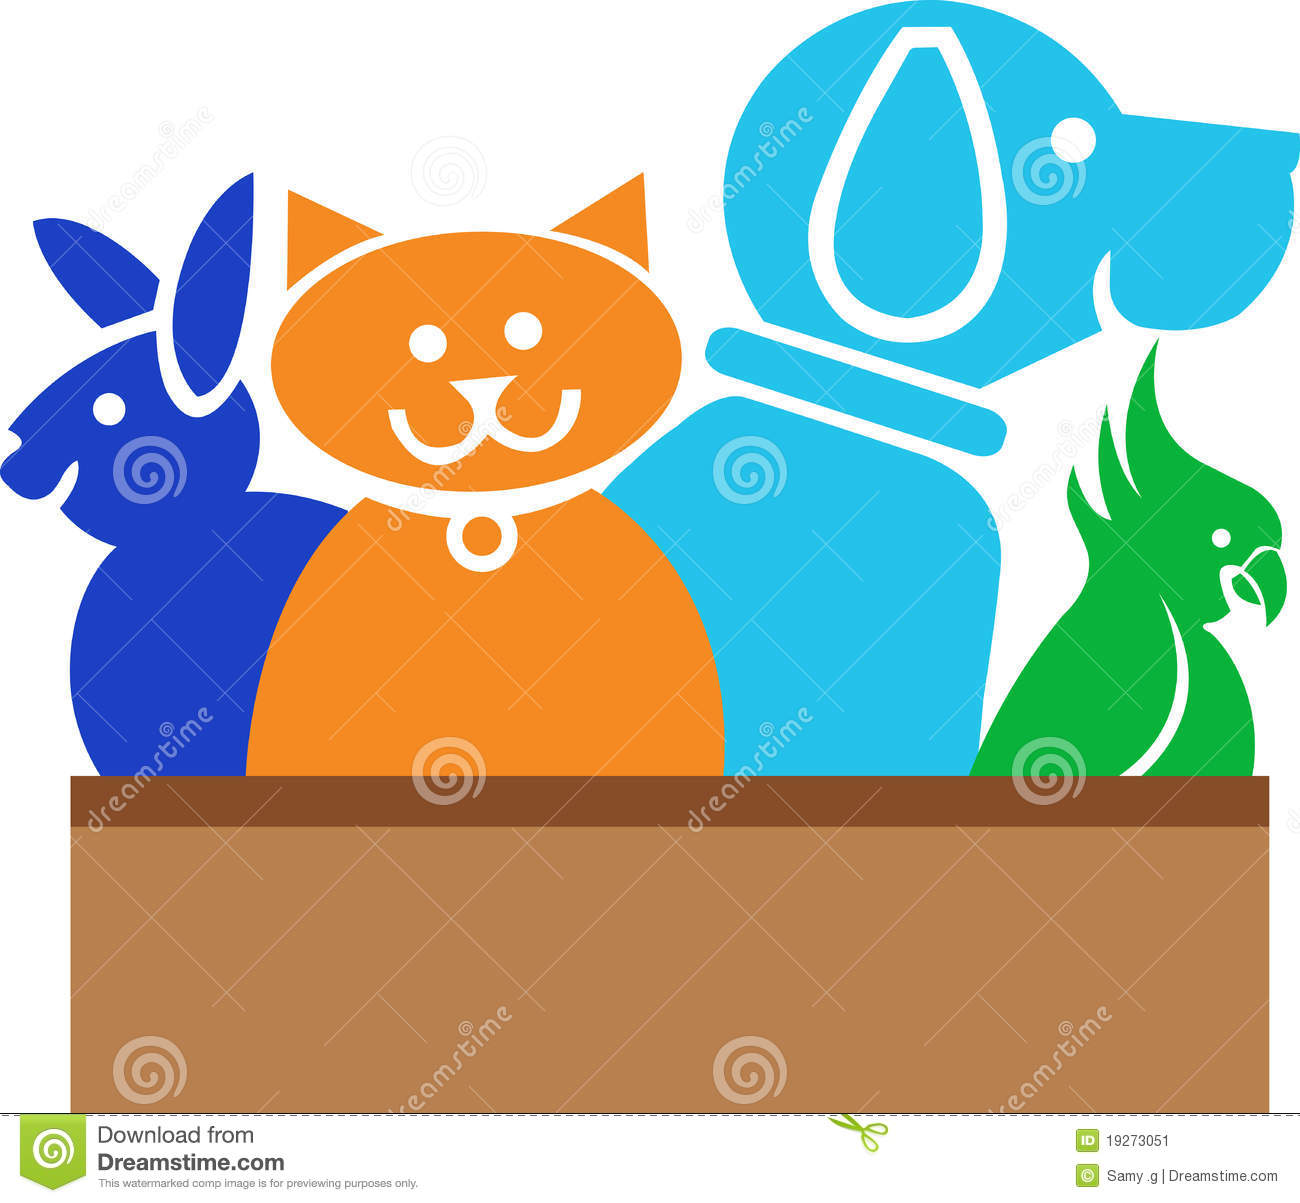 Illustration art of a pet animals logo with isolated background.